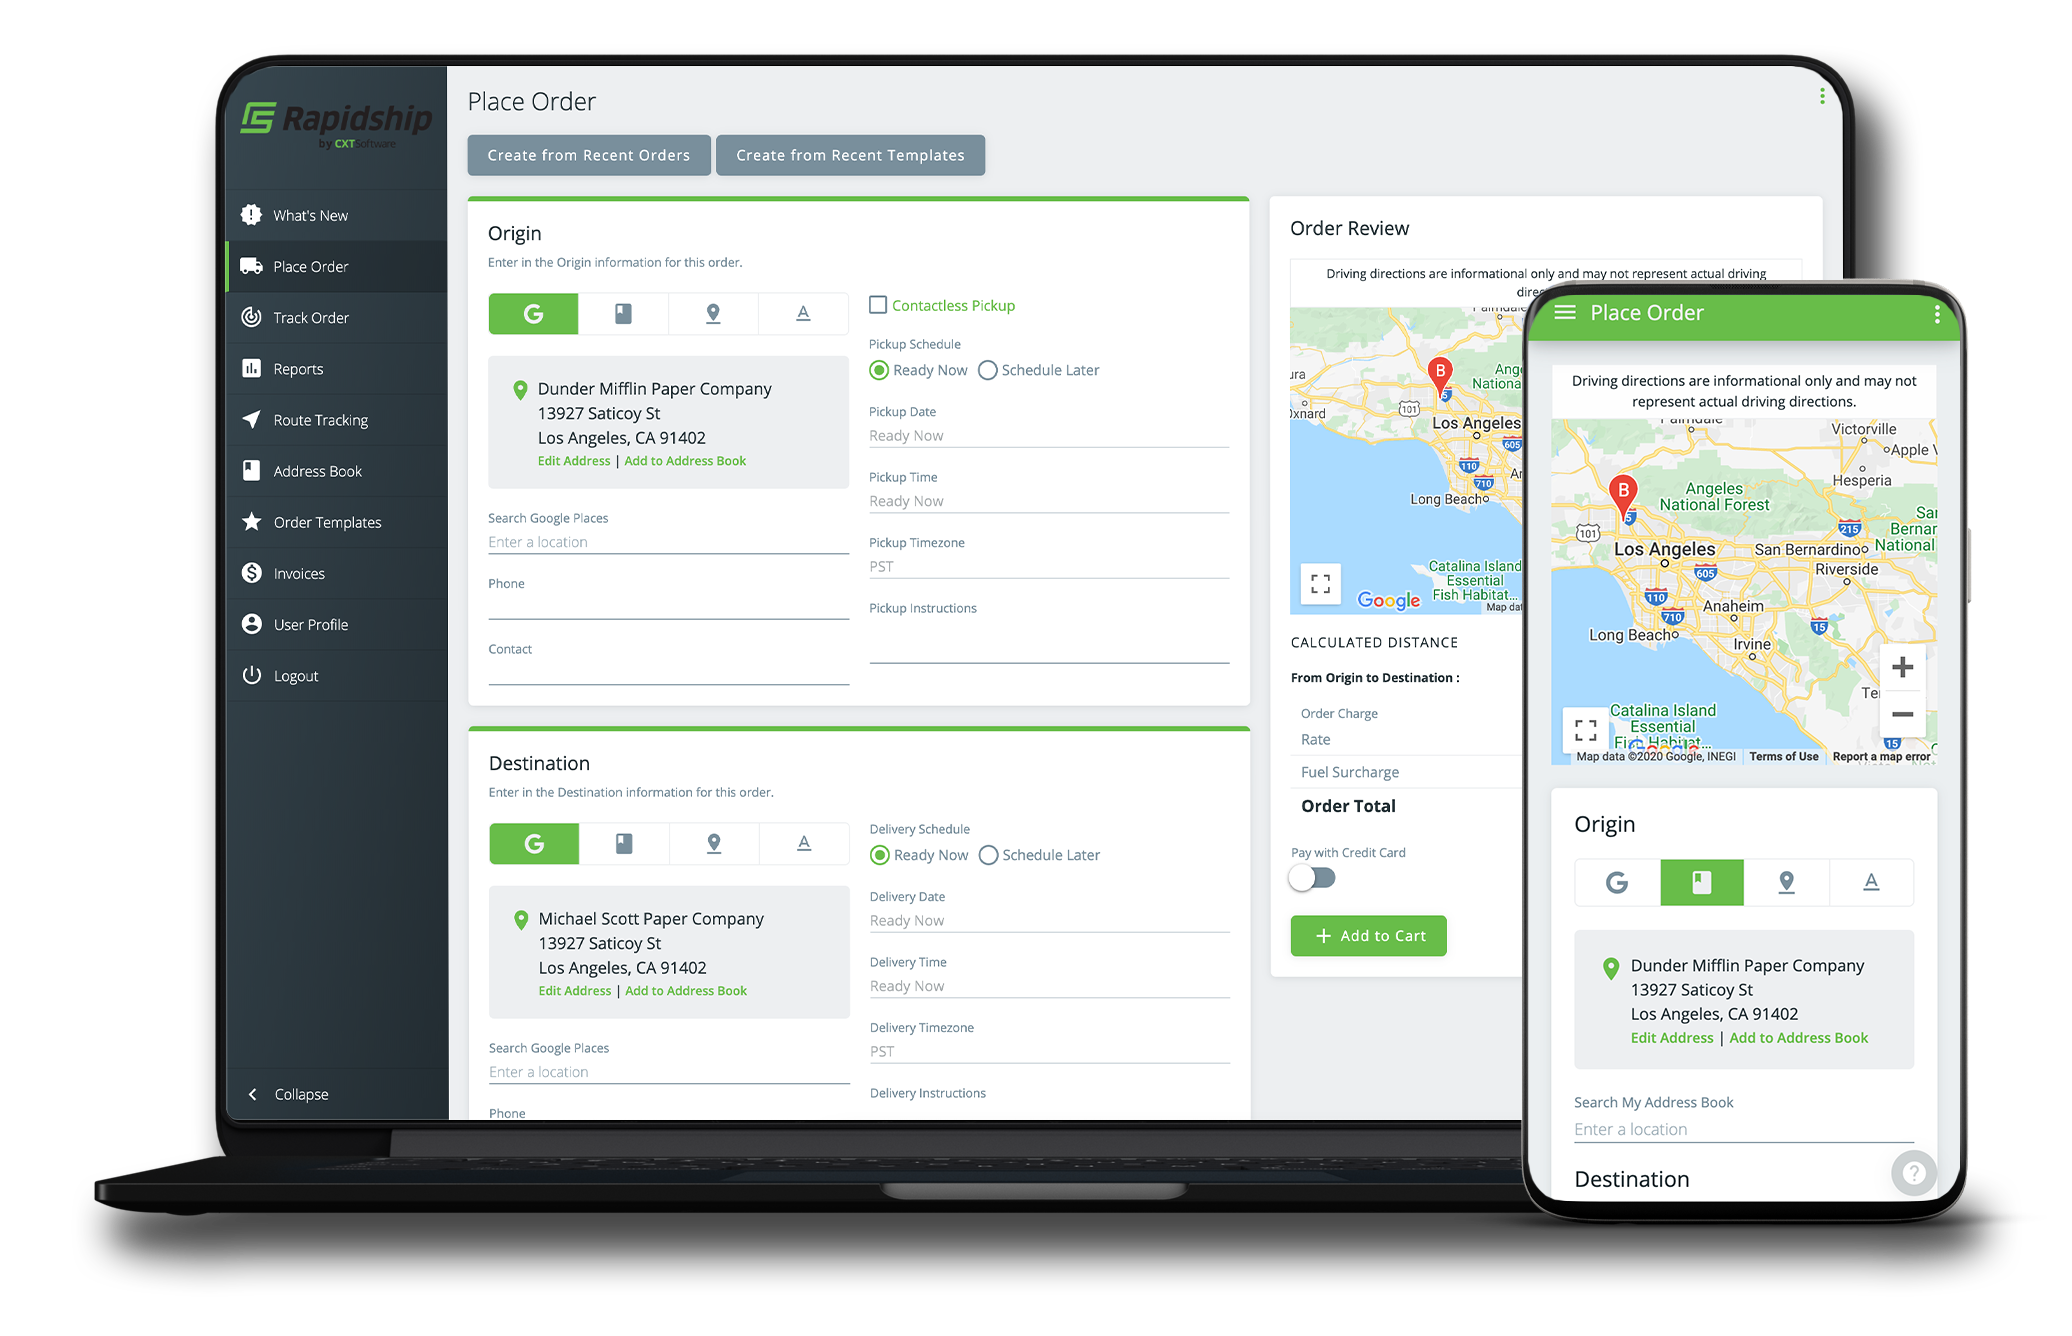 The client portal runs on all device types providing your customers the flexibility to connect with you on all their devices.